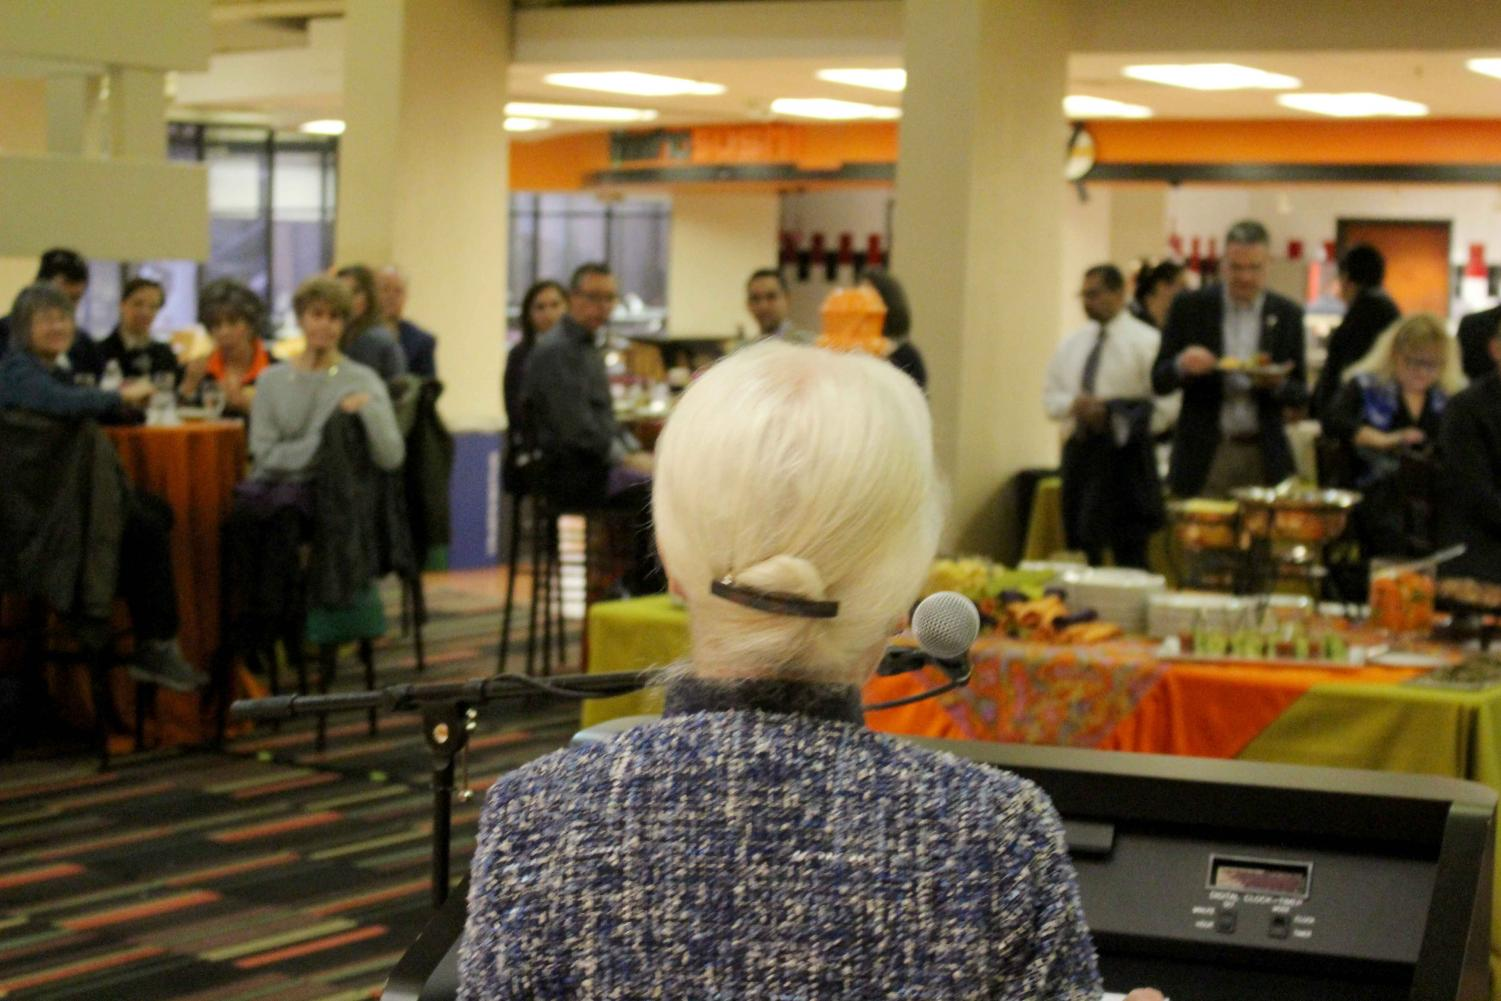 Monday, Feb. 18, Dr. Diana Natalicio and members of the UTEP faculty at the Union Lounge before the opening of the exhibit